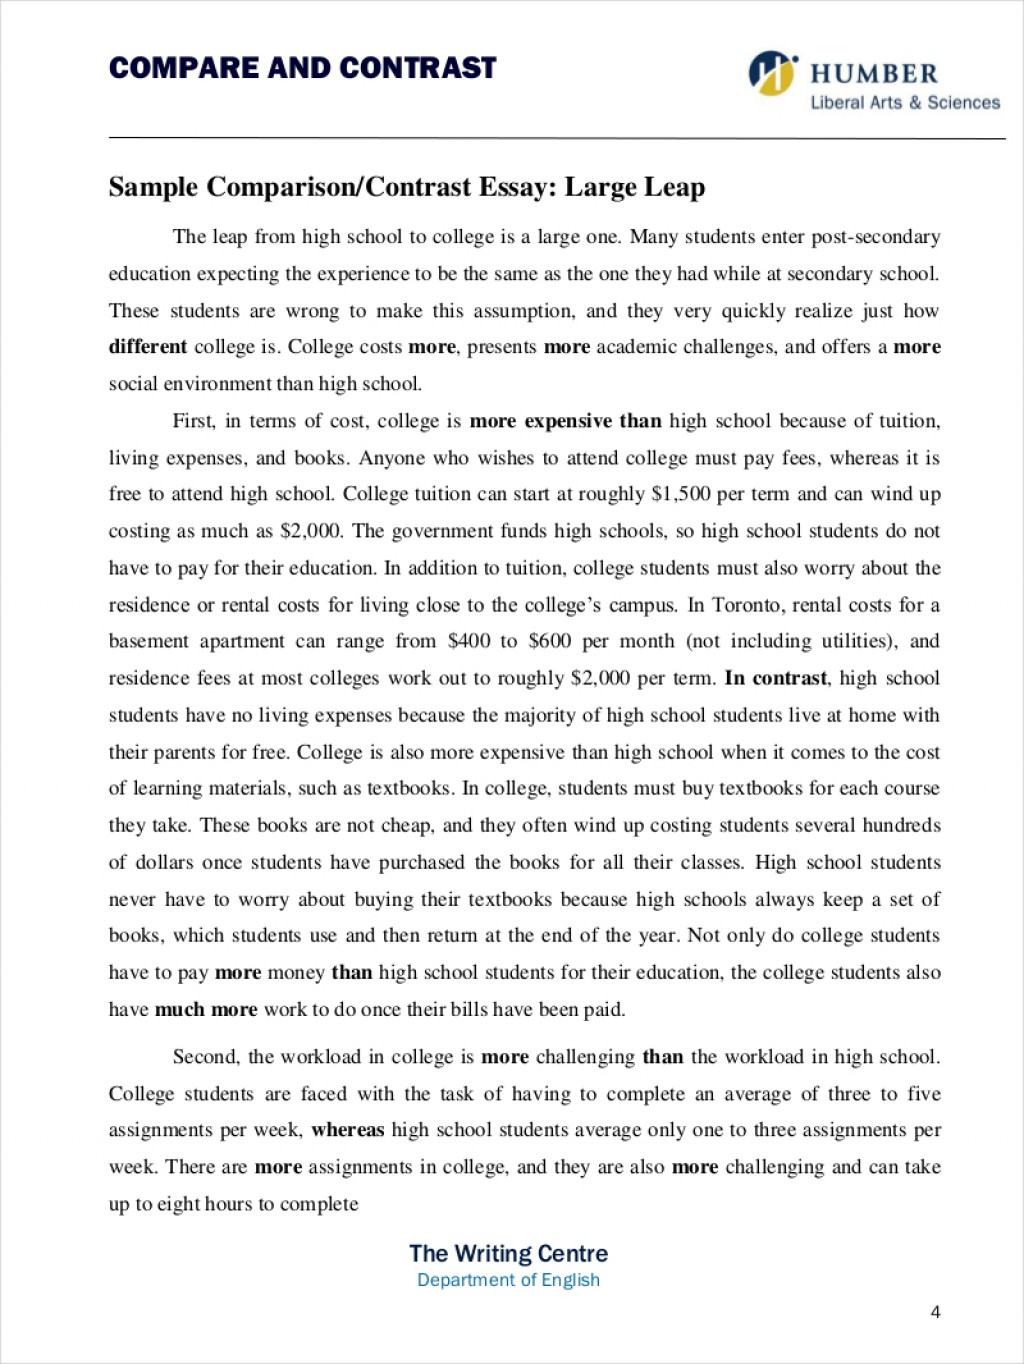 006 Compare And Contrast Essay Examples Comparative Samples Free Pdf Format Download Throughout Comparison Thesis Coles Thecolossus Co Within Ex 5th Grade 4th 6th 3rd Magnificent For Elementary Students College Level Large